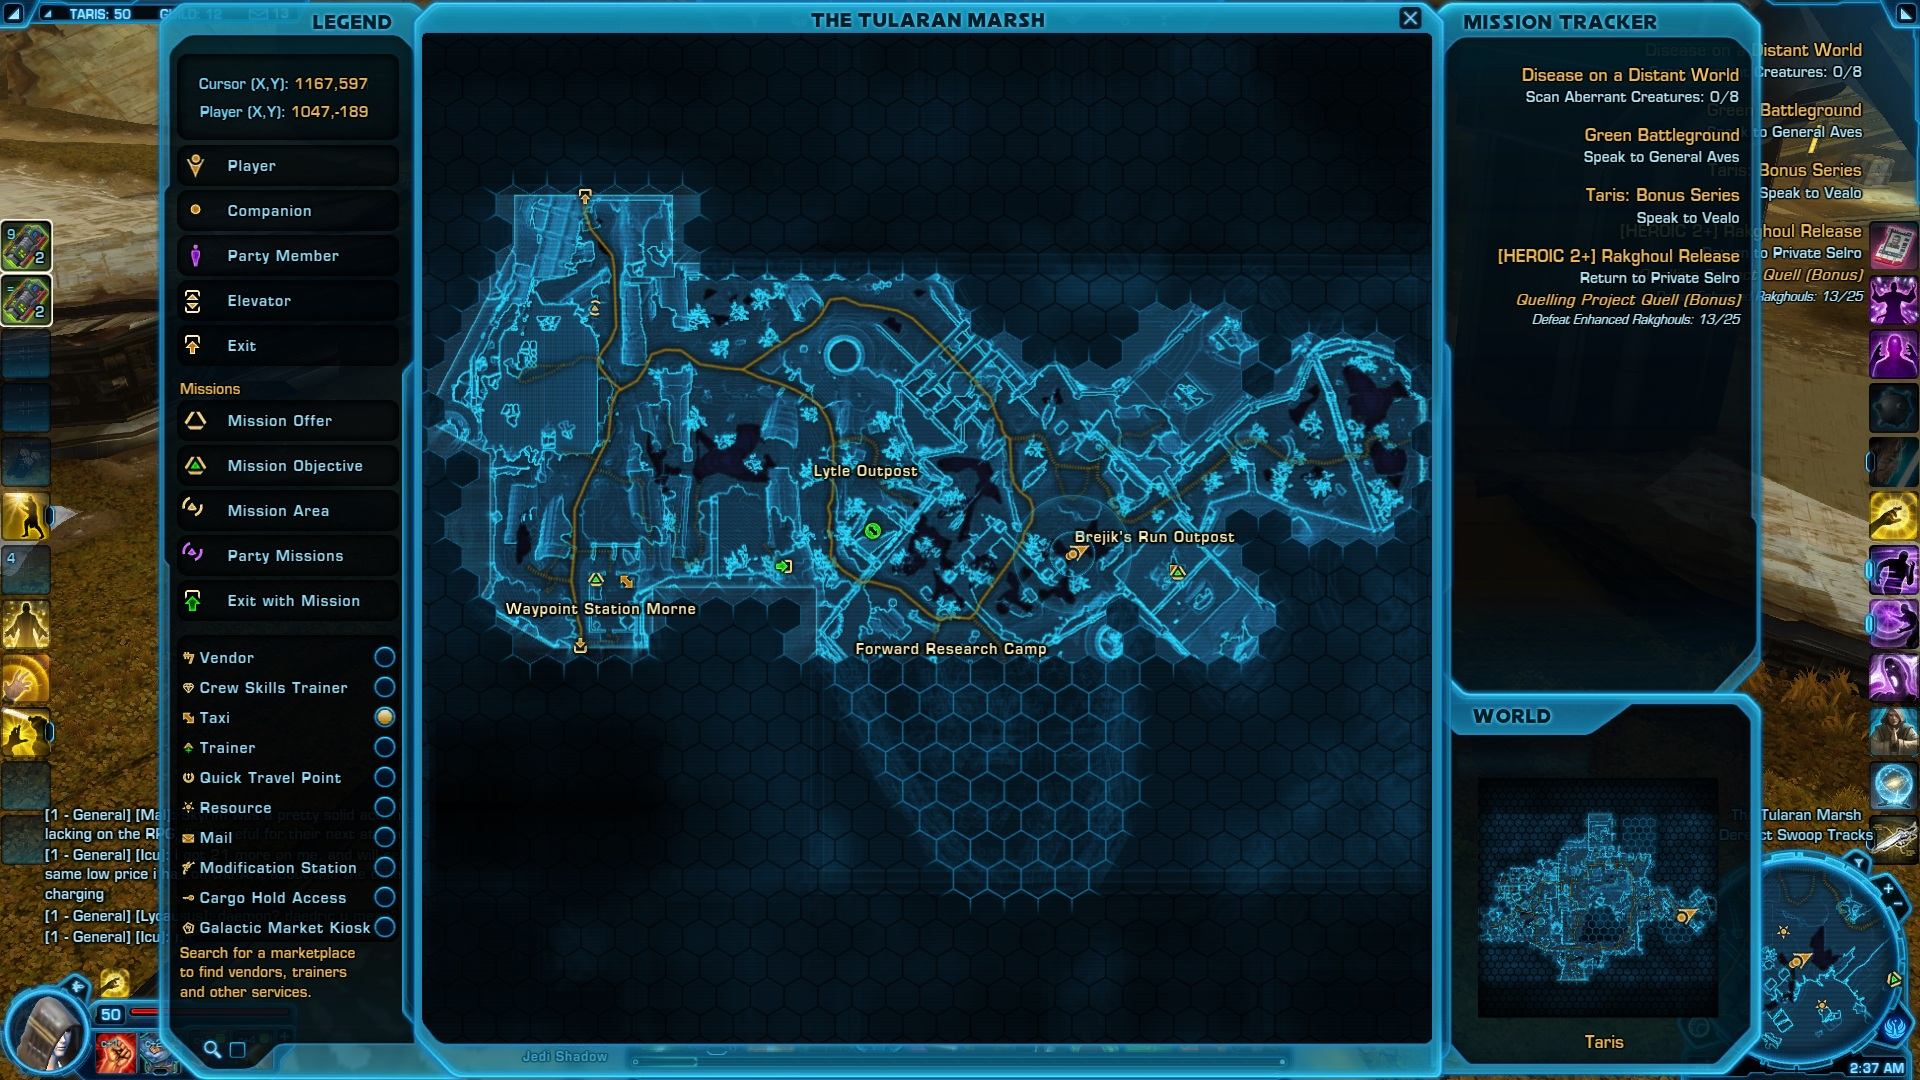 Taris Cunning Datacron location on the map